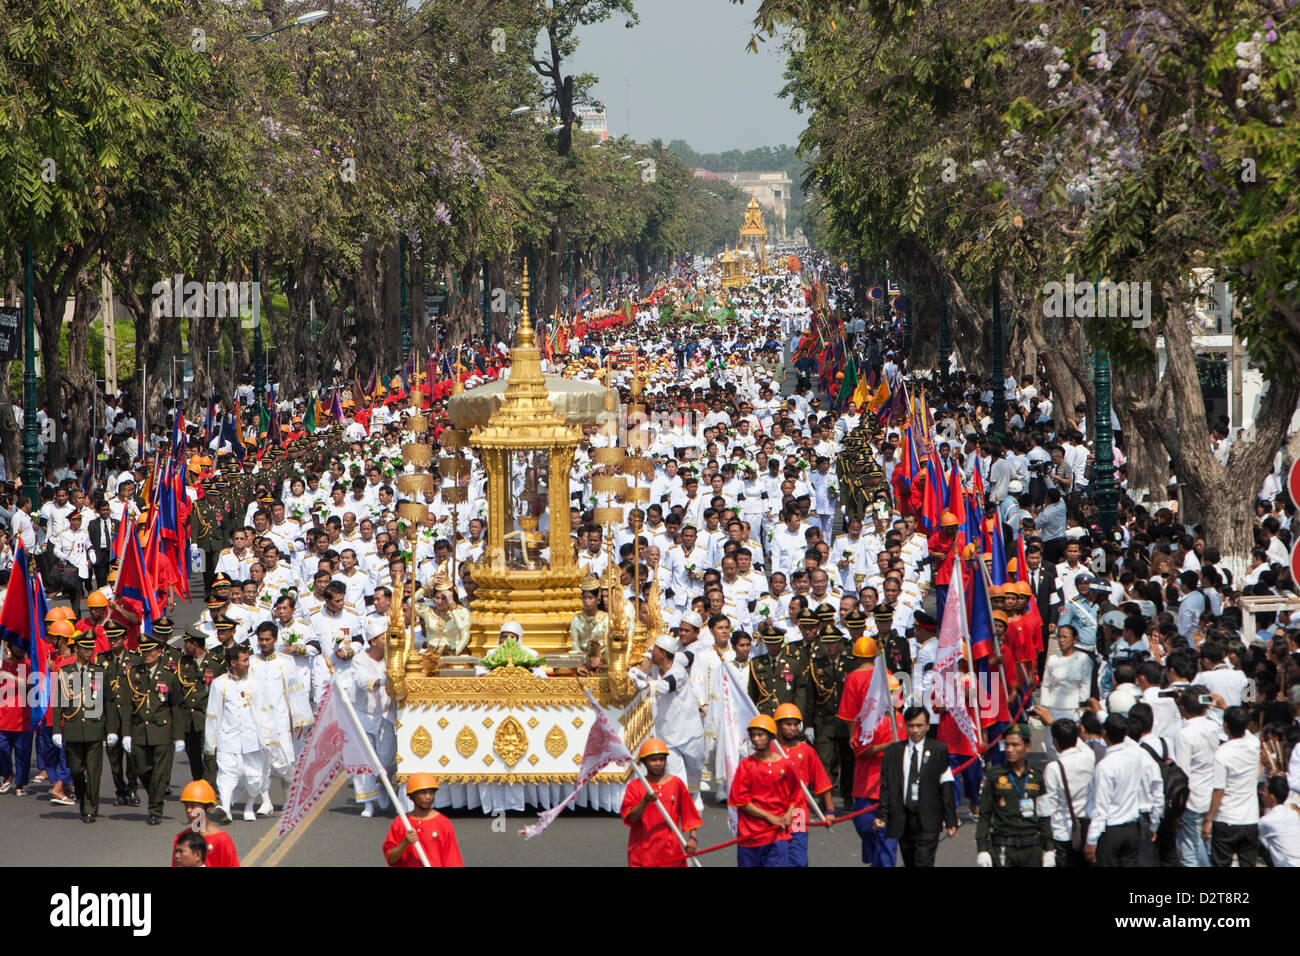 Phnom Penh, Cambodia. 1st February 2013. Funeral of King Norodom Sihanouk, who died in October. Credit:  Combre Stock Photo